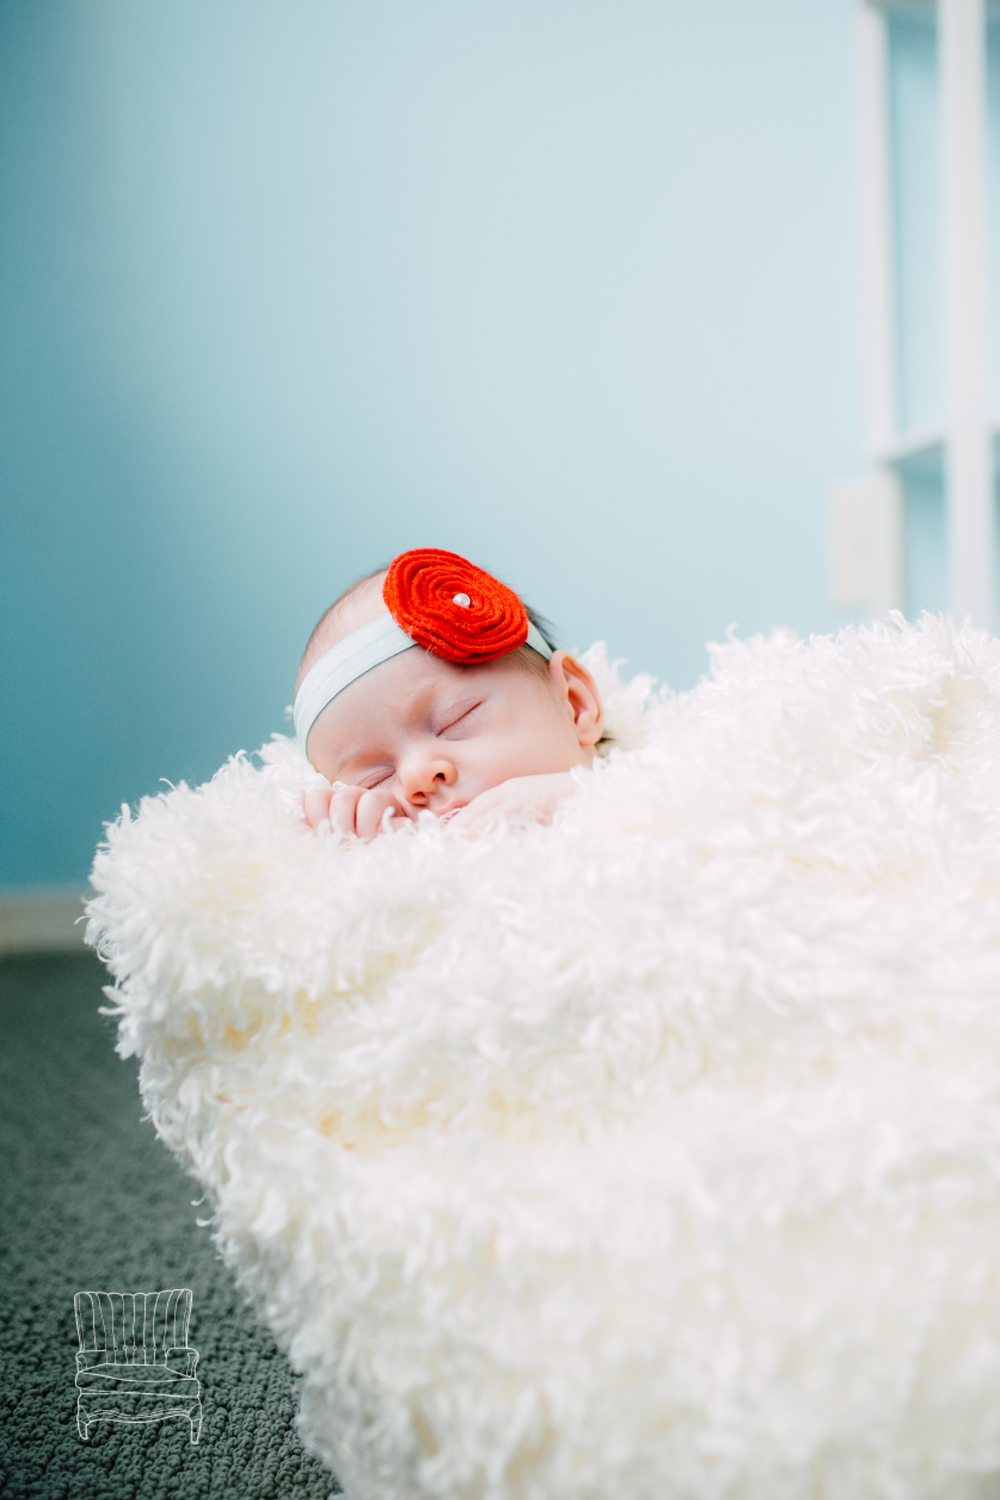 bellingham-newborn-photographer-photo-lifestyle-session-harper-32.jpg